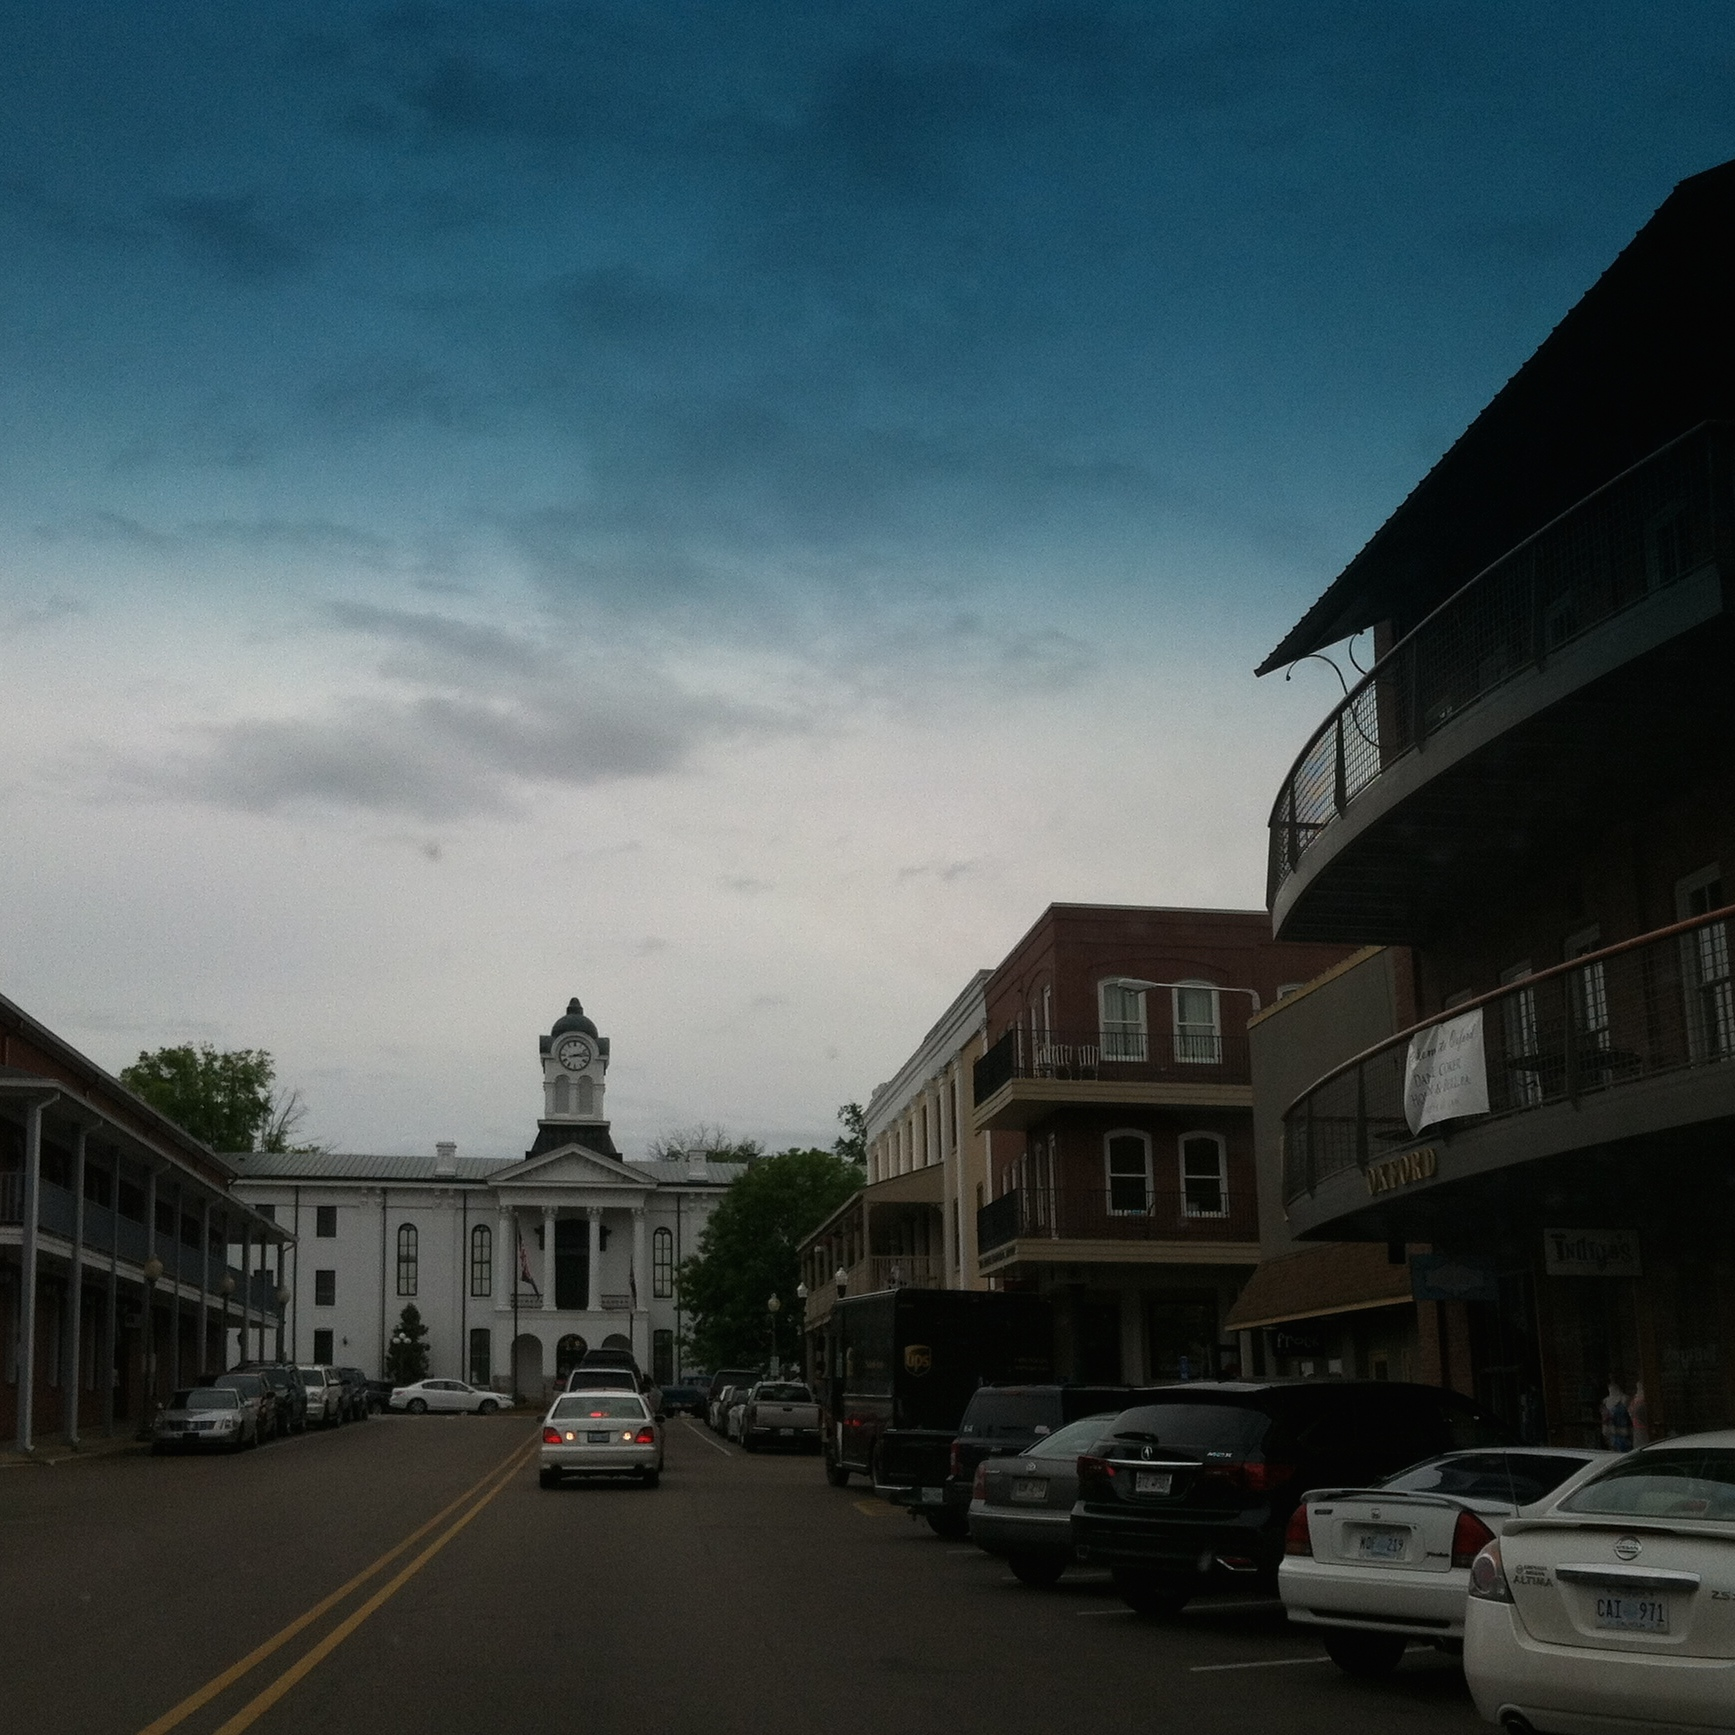 lots of beautiful old buildings in this lovely little college town in mississippi.